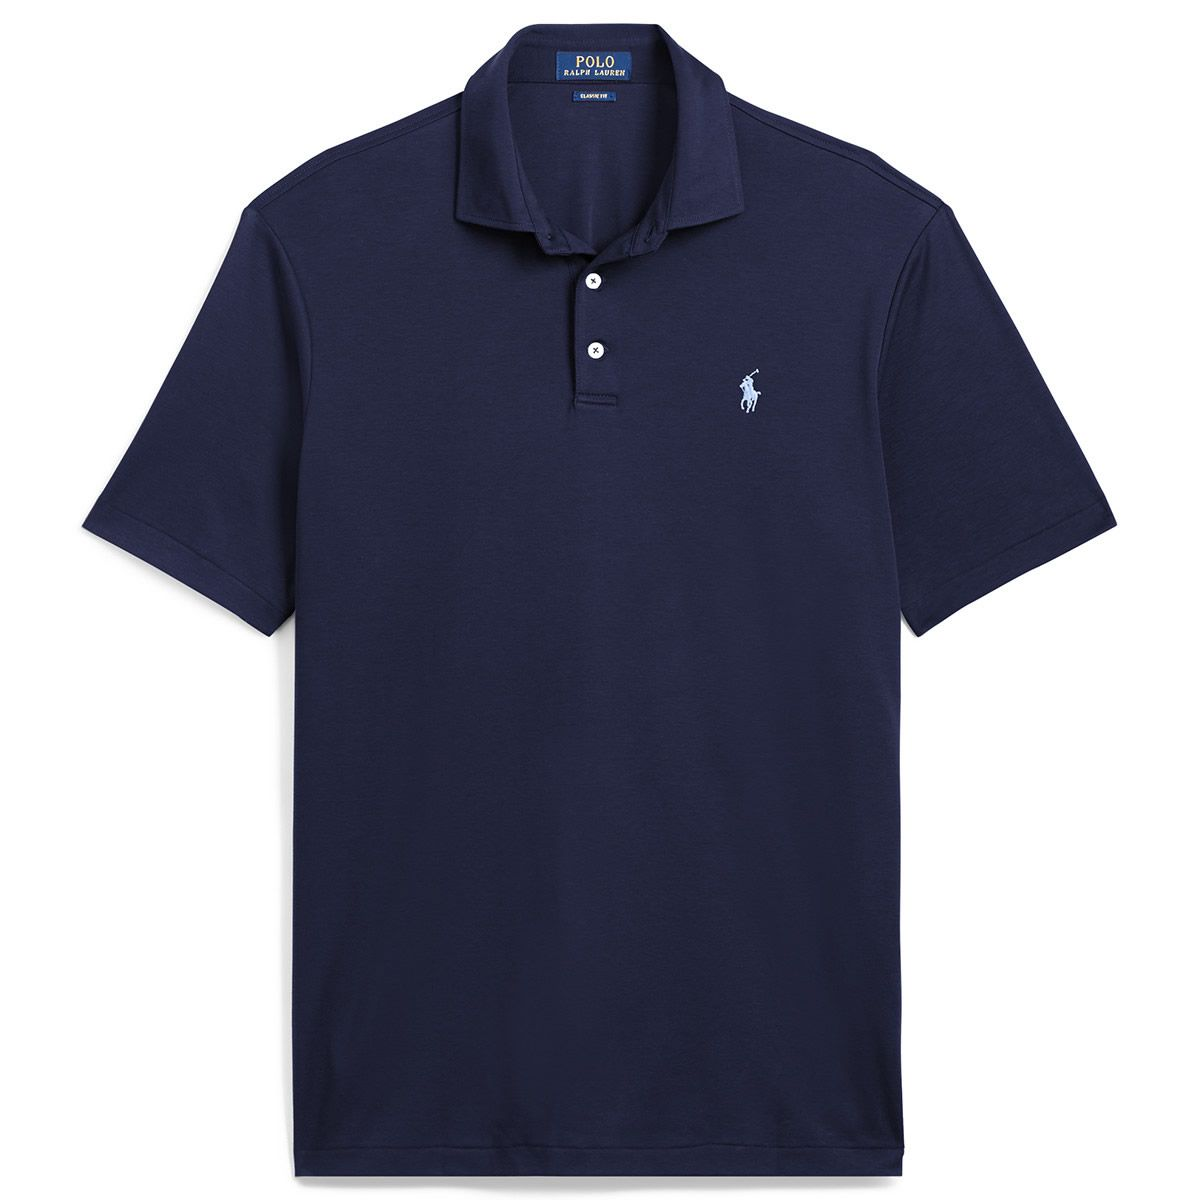 330210659c9 Polo Ralph Lauren Mens Polo Shirts - Macy s